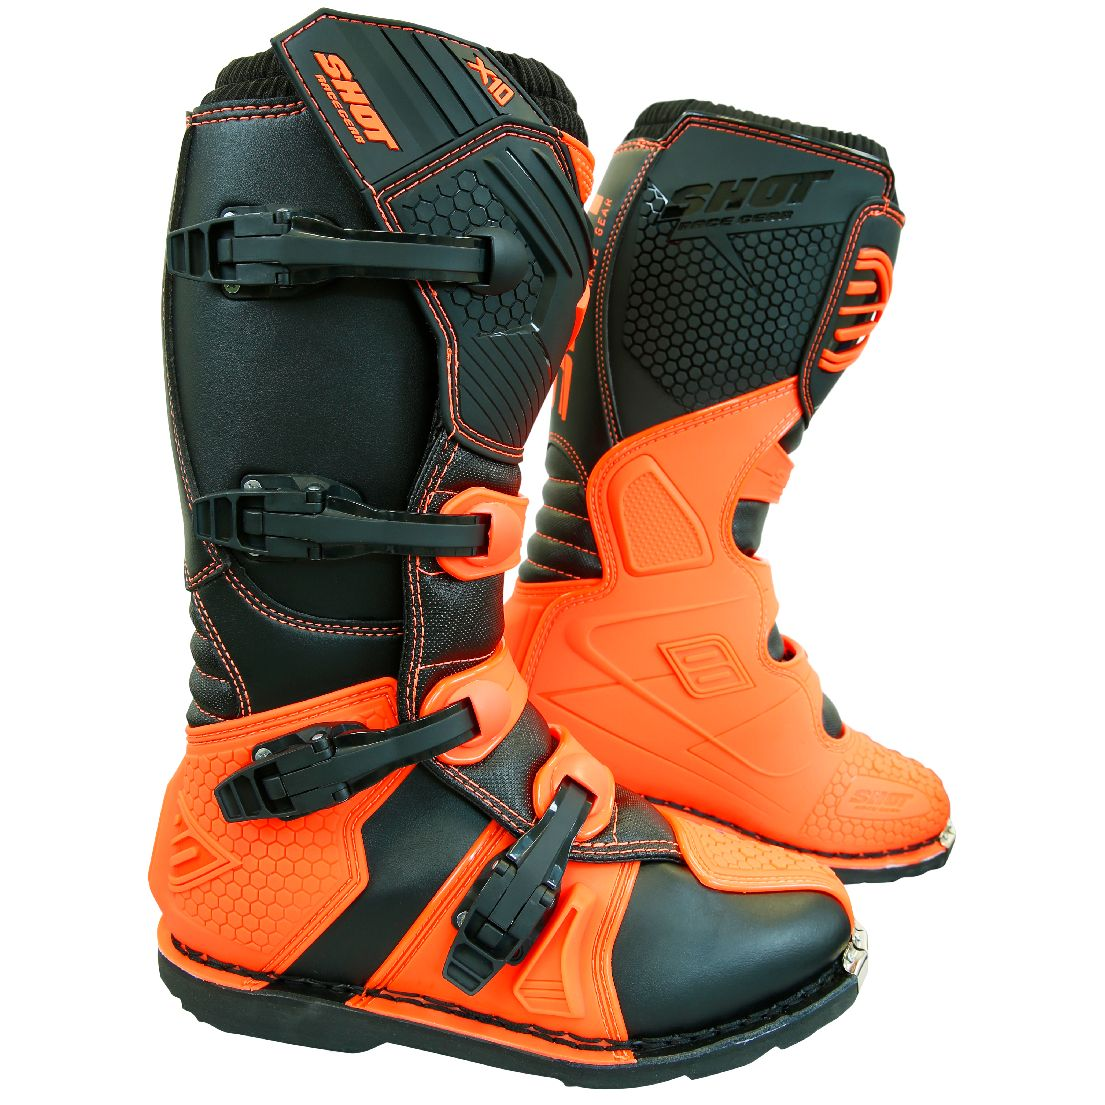 Bottes cross Shot destockage X10 2.0 - NEON ORANGE 2019